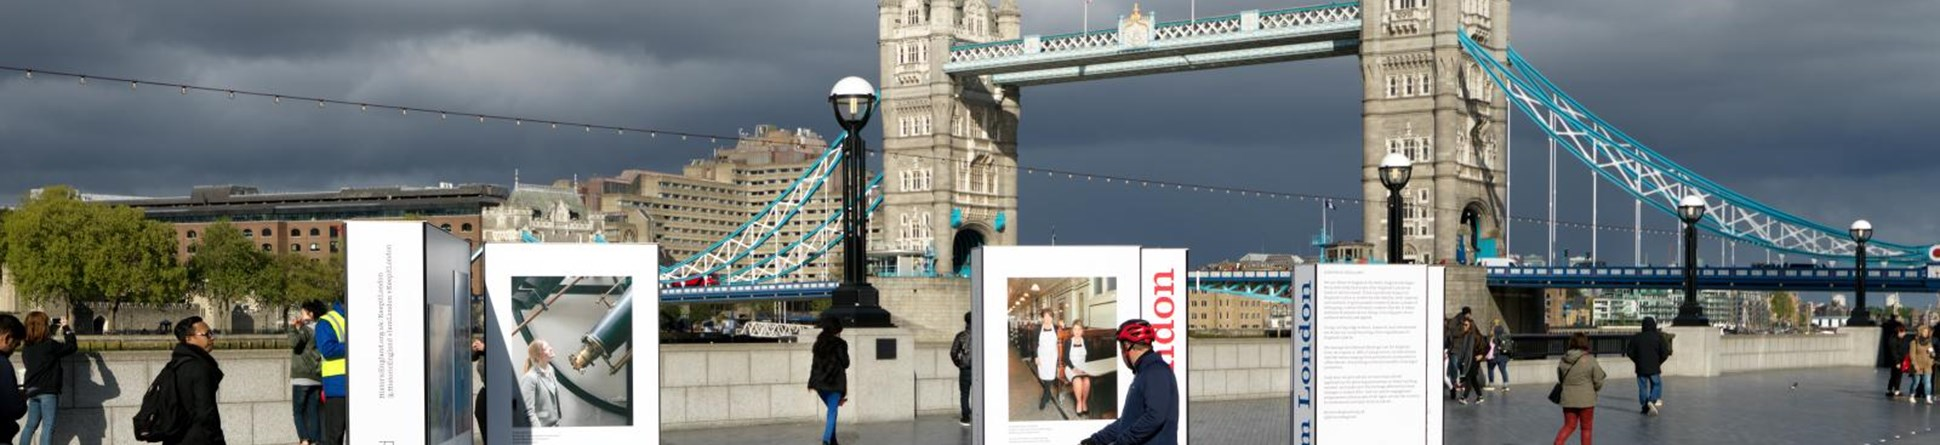 Tower Bridge, London with pedestrians and cyclists in the foreground stopping to look at Historic England's I am London exhibition panels in a pedestrianised area on the south bank.